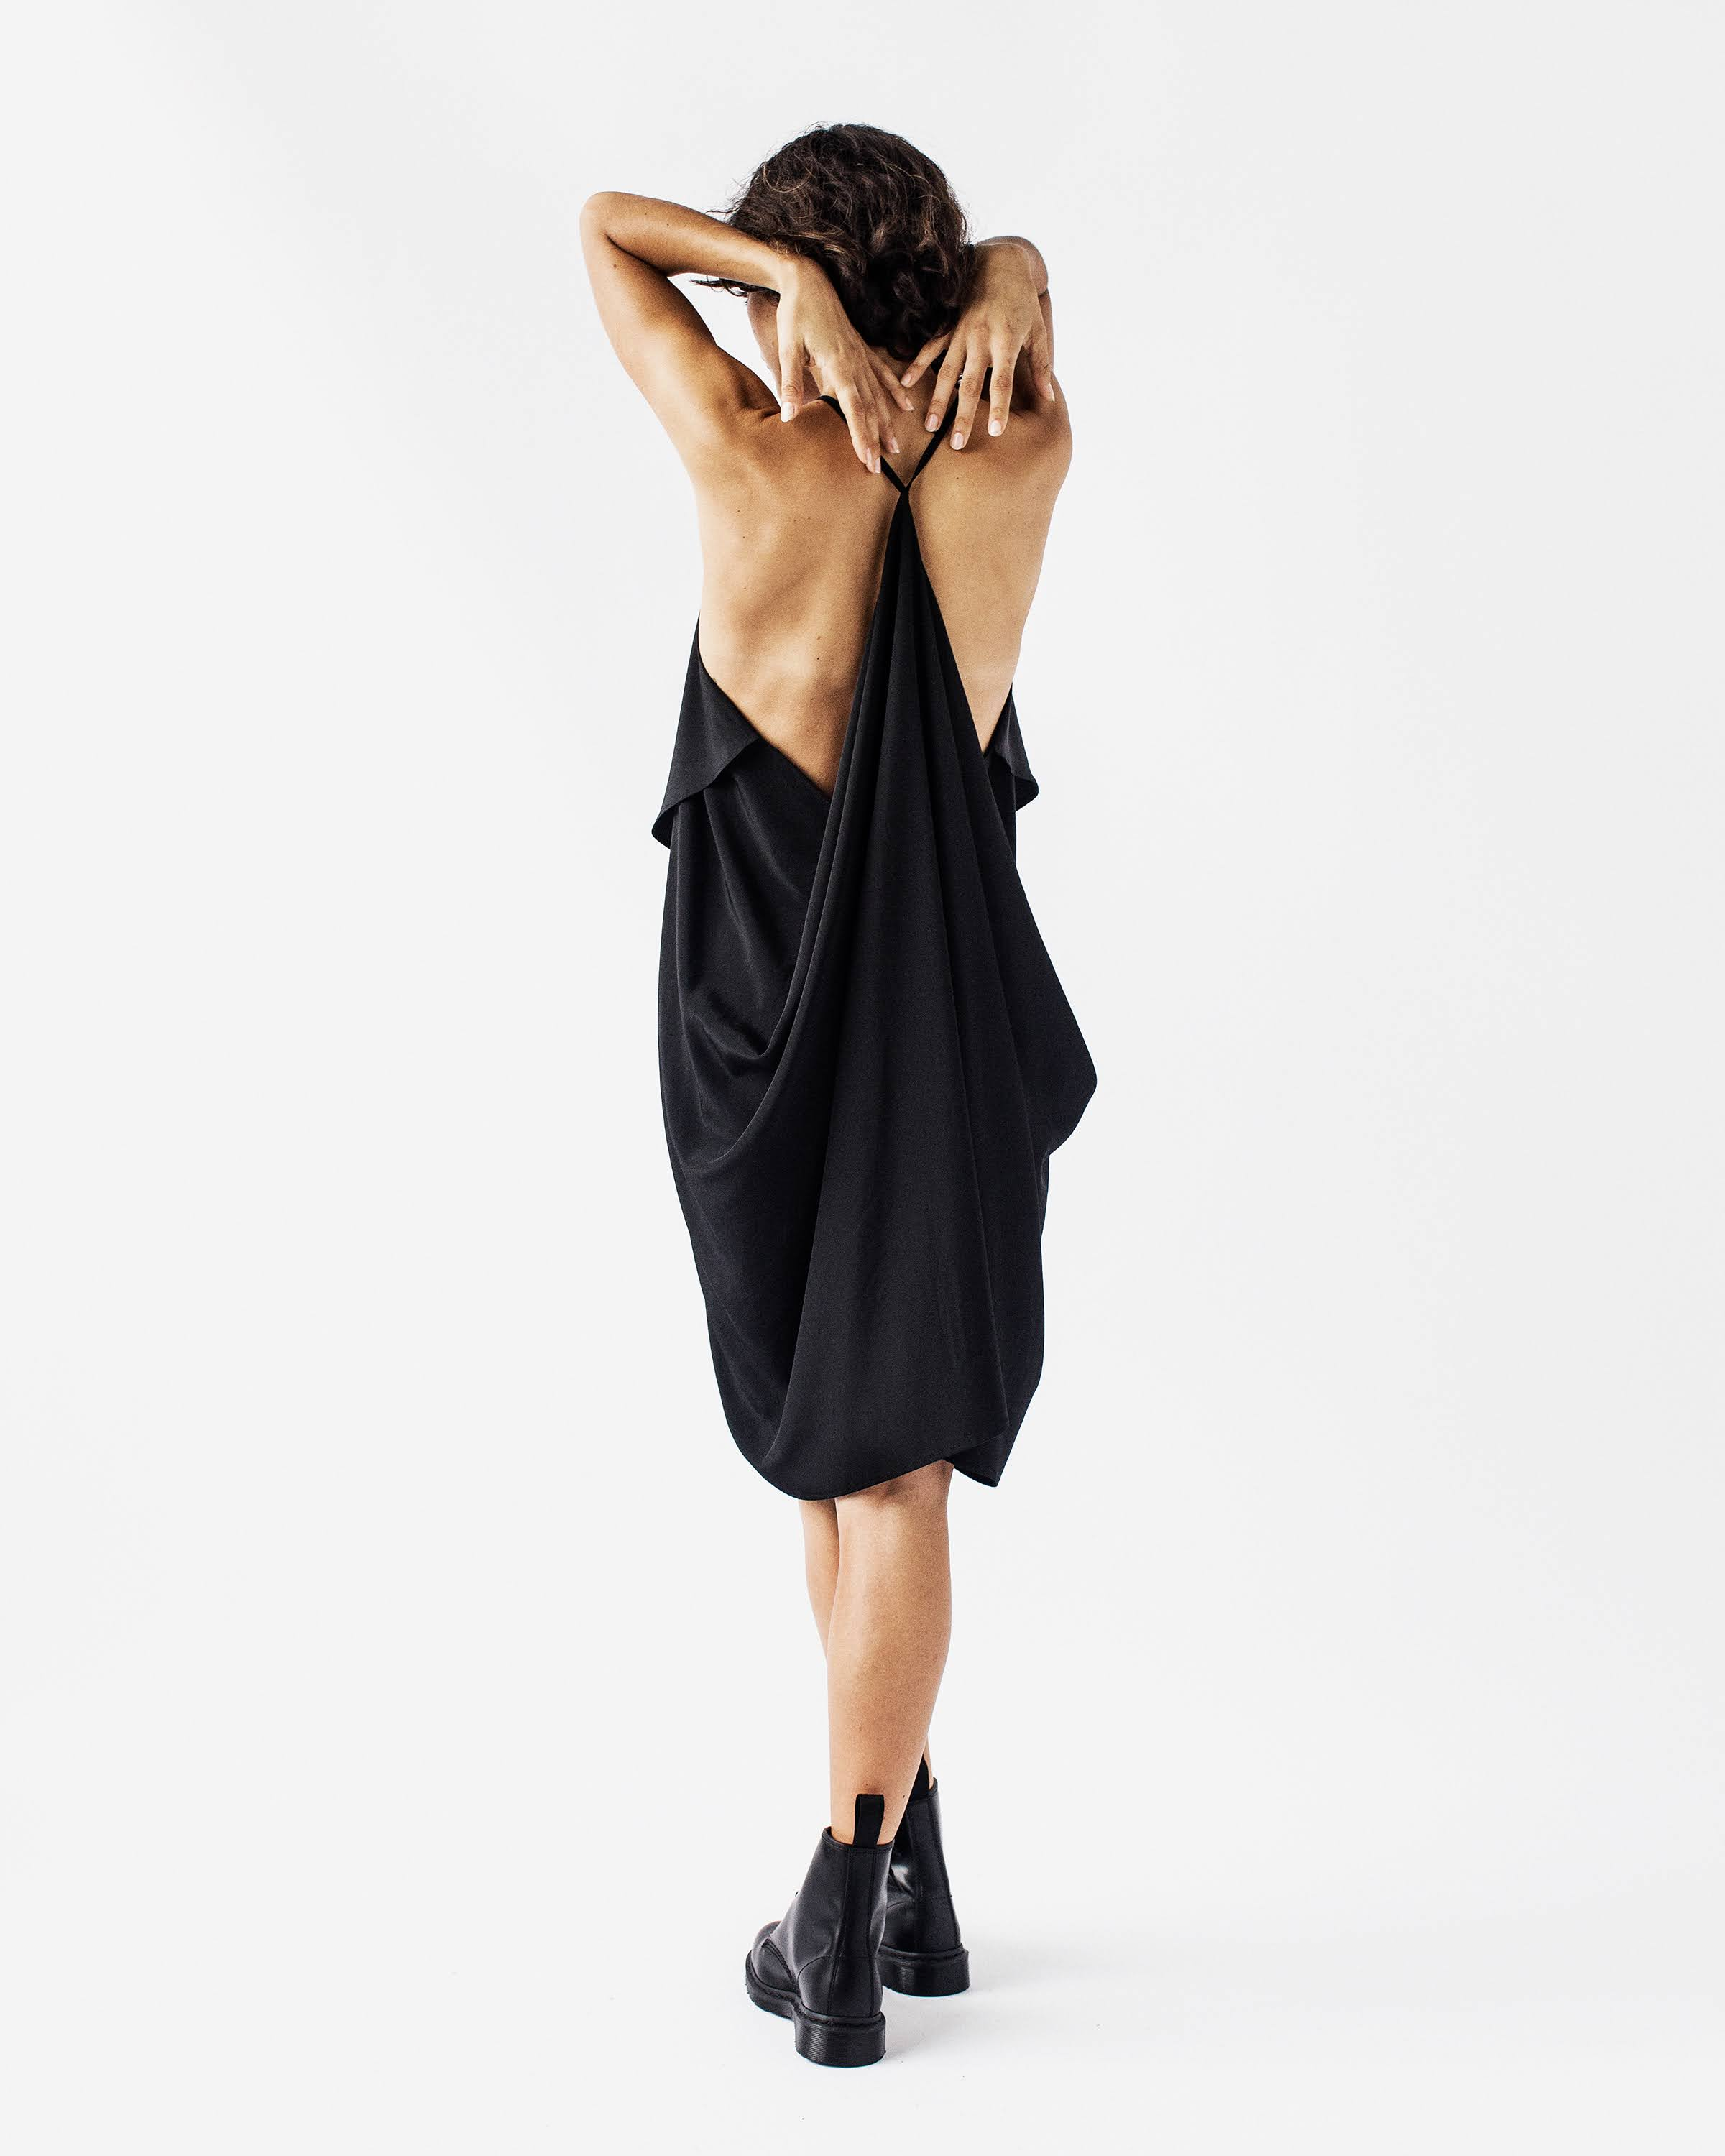 LINNY - Flowy, knee length, Silk Crepe Dress.